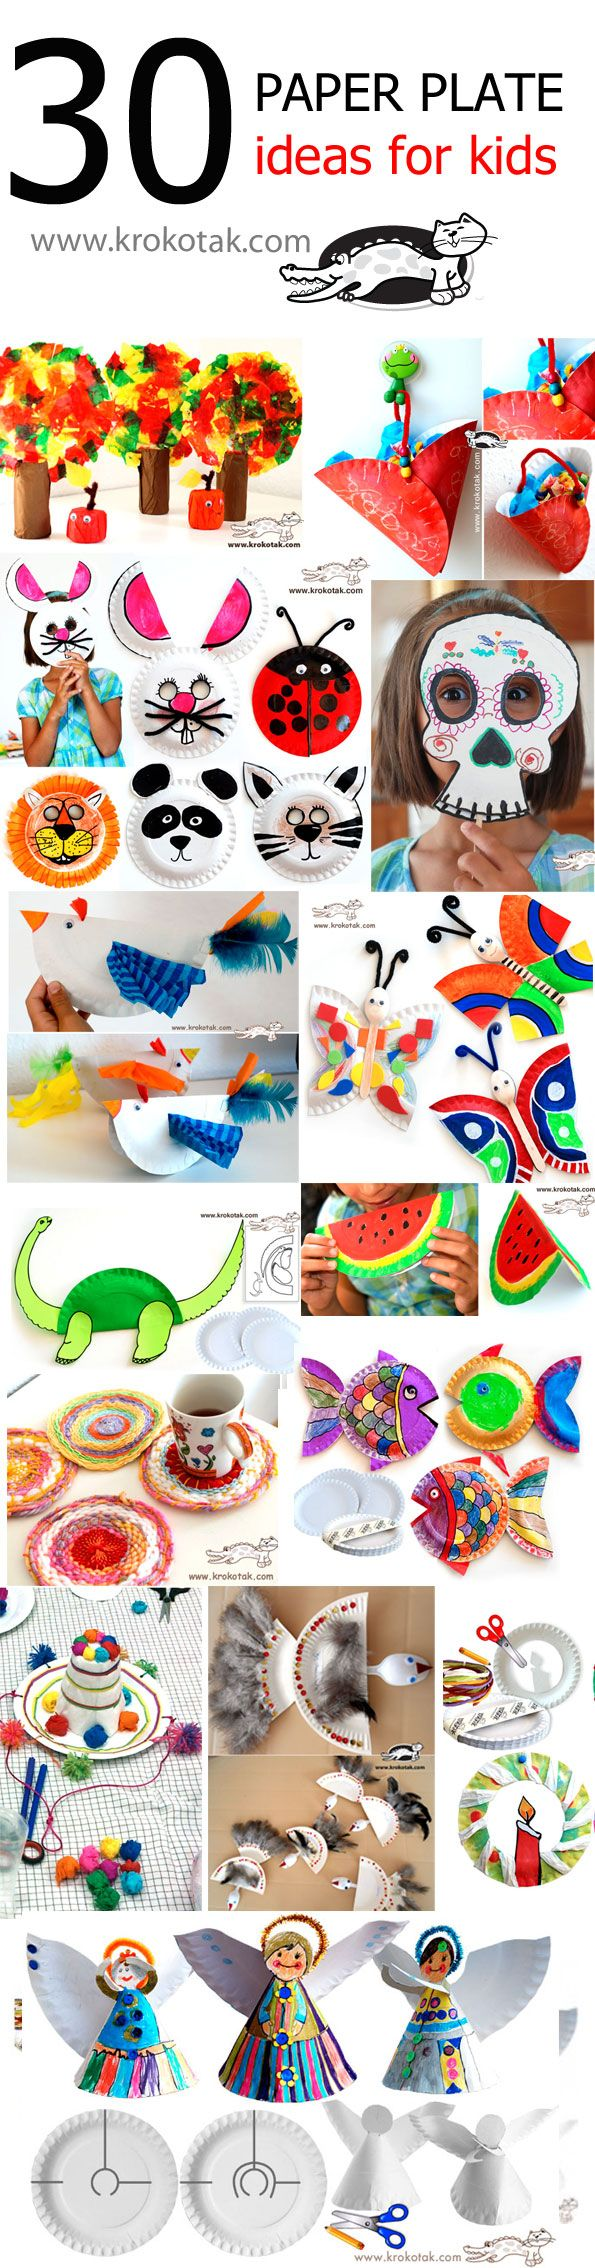 PAPER PLATE Ideas for kids by krokotak.com